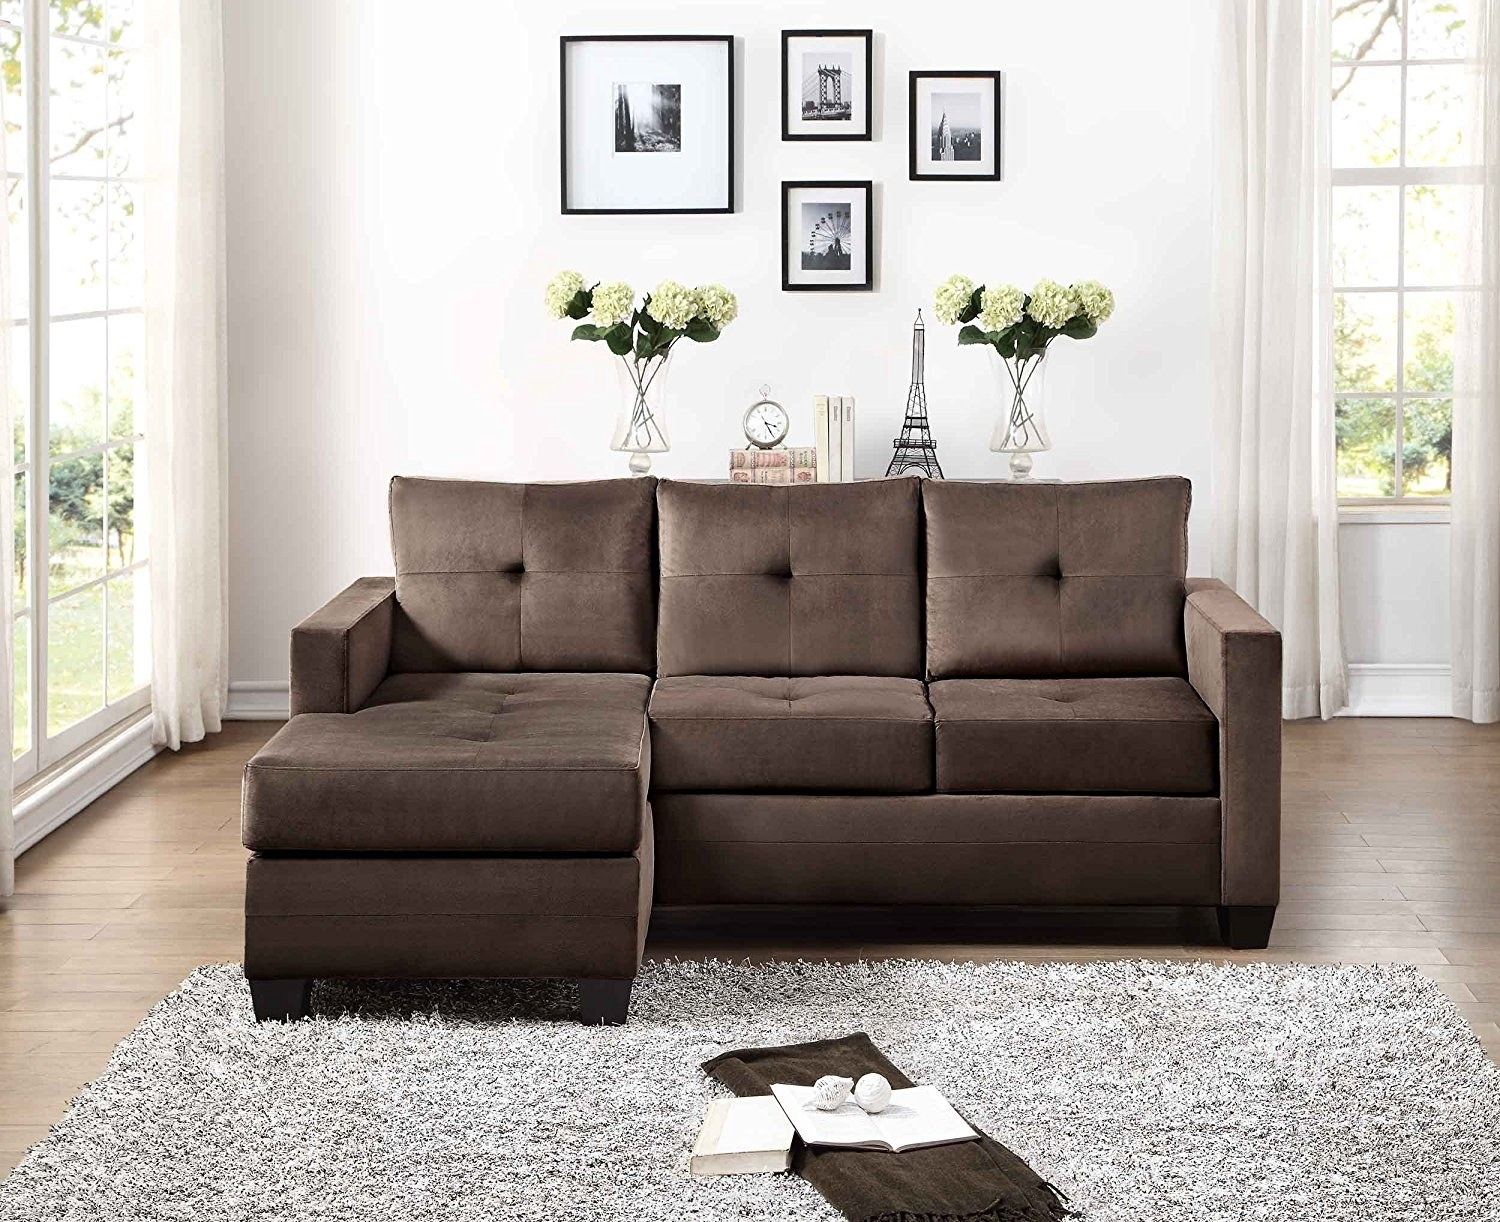 22 inexpensive couches you 39 ll actually want in your home for Comfy sofas for sale